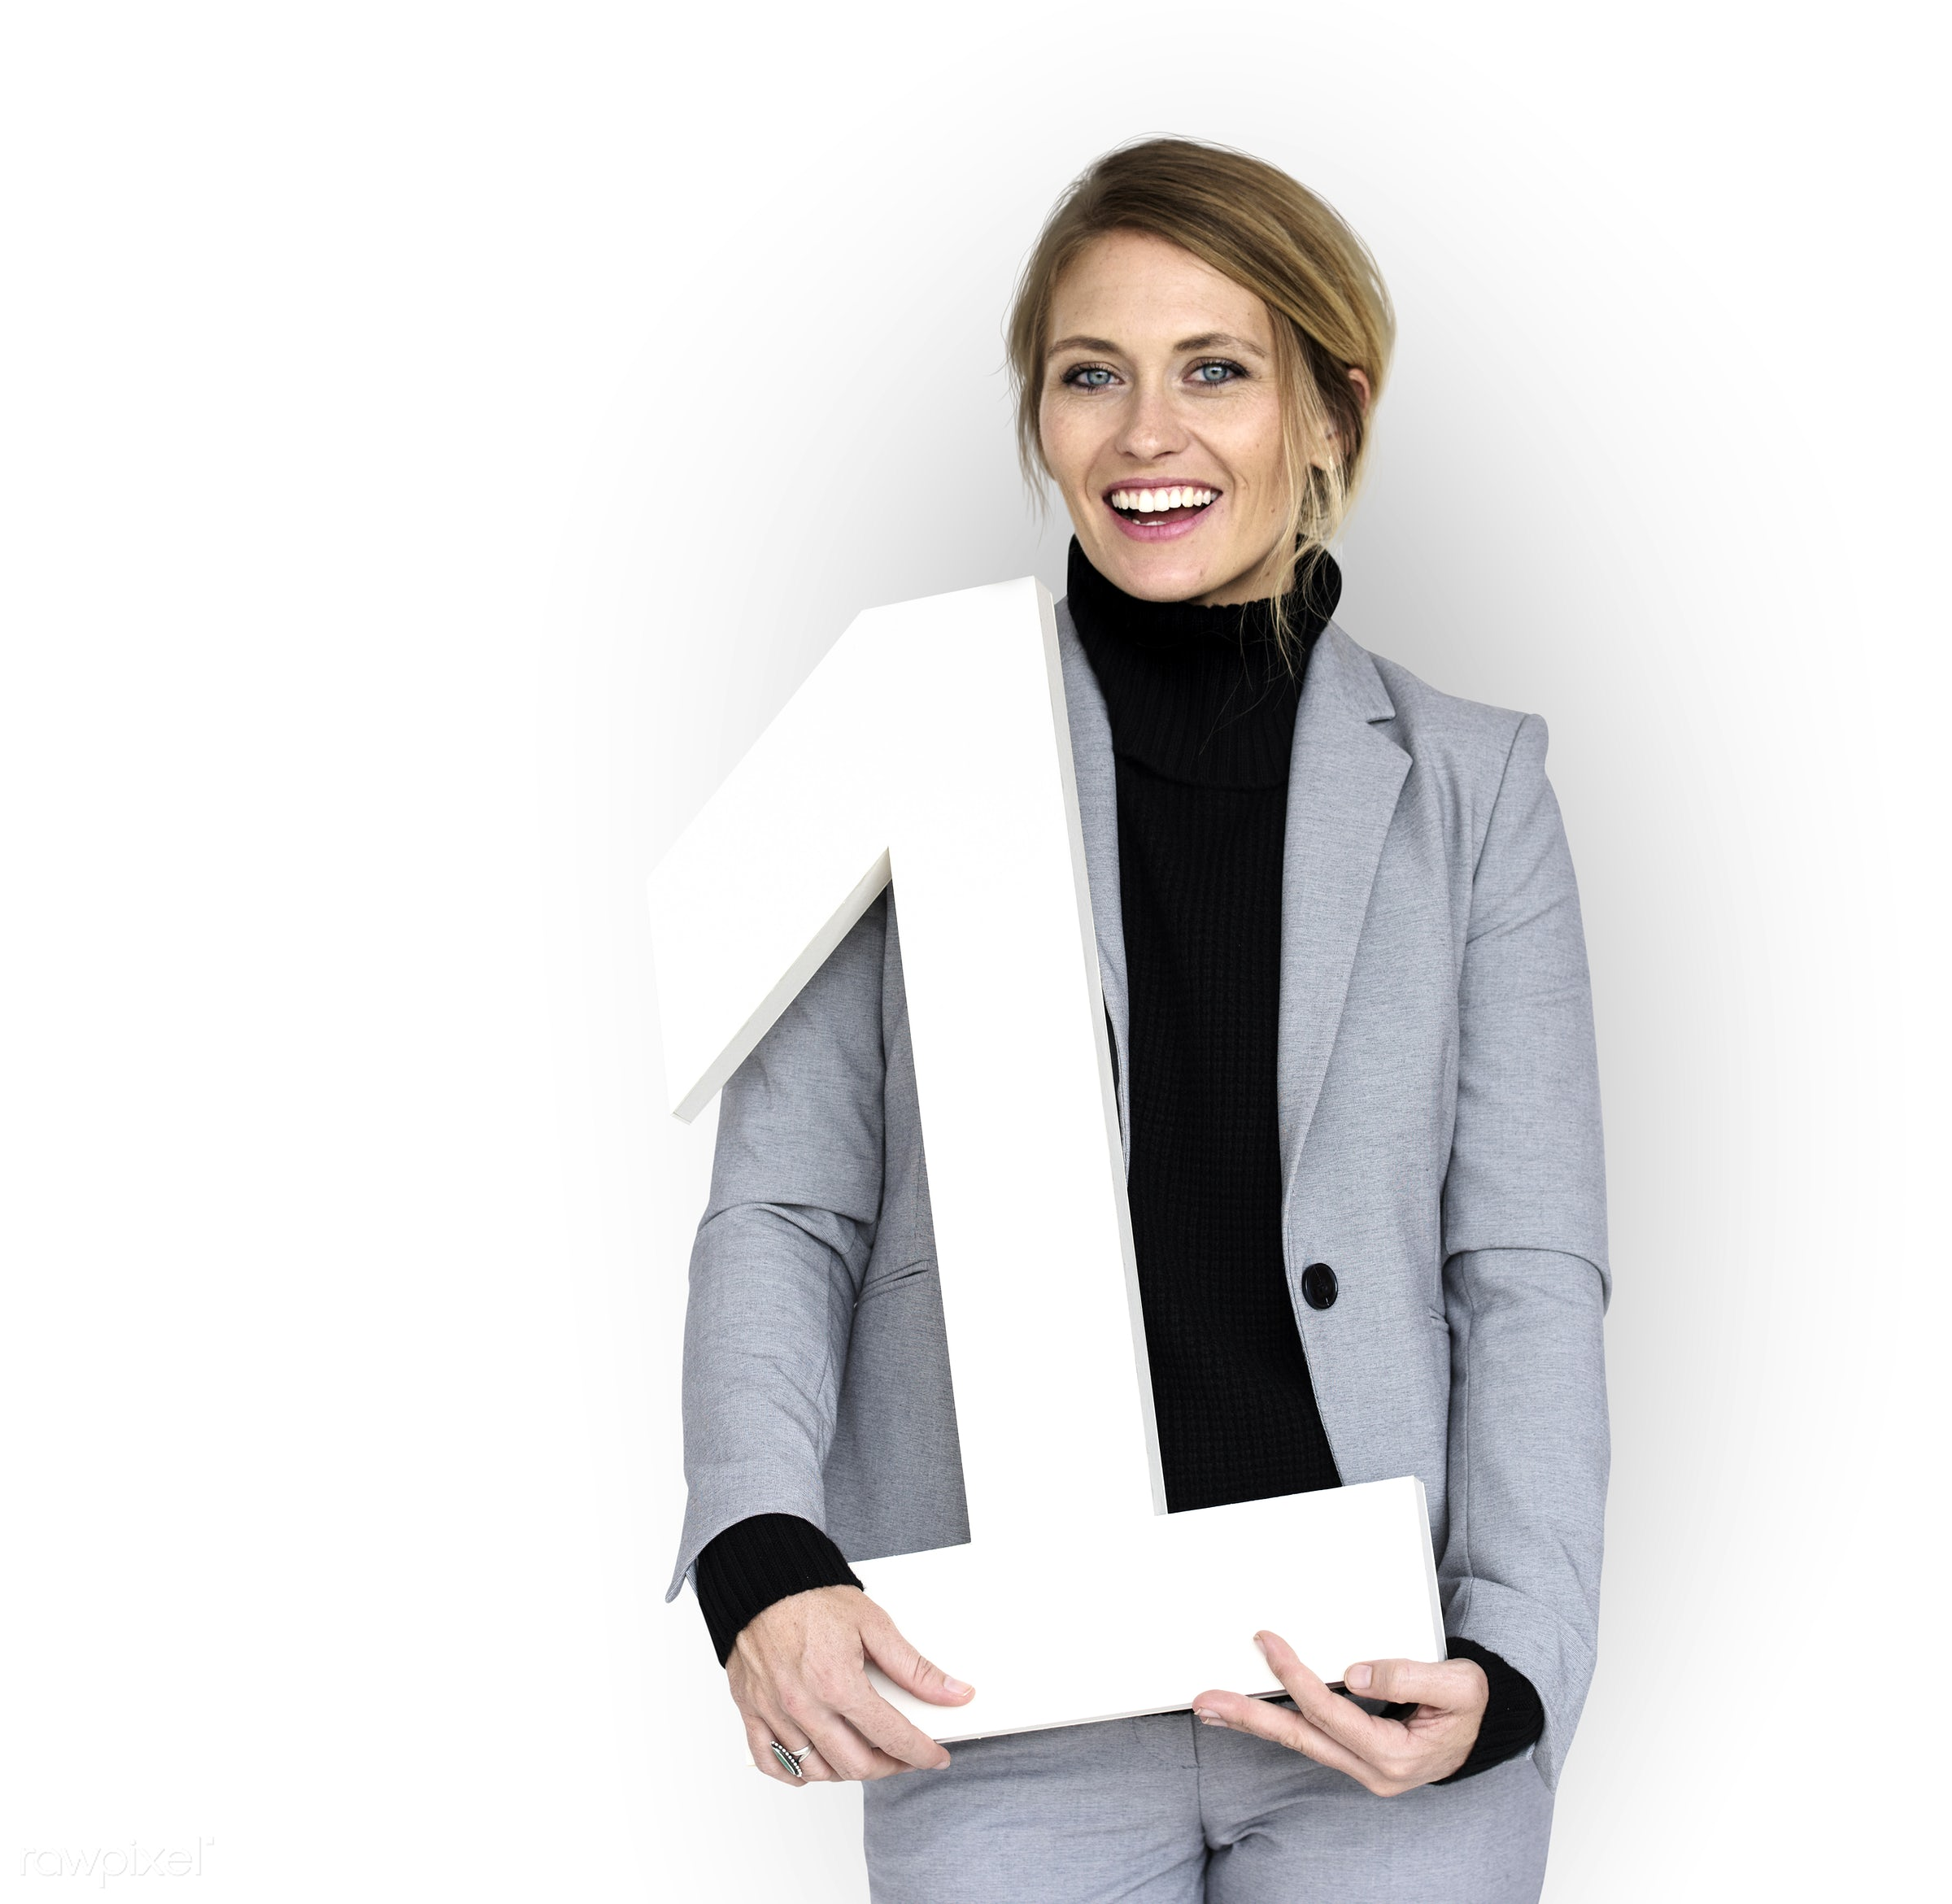 studio, expression, person, business wear, joy, isolated on white, achieve, people, caucasian, rank, girl, joyous, happy,...